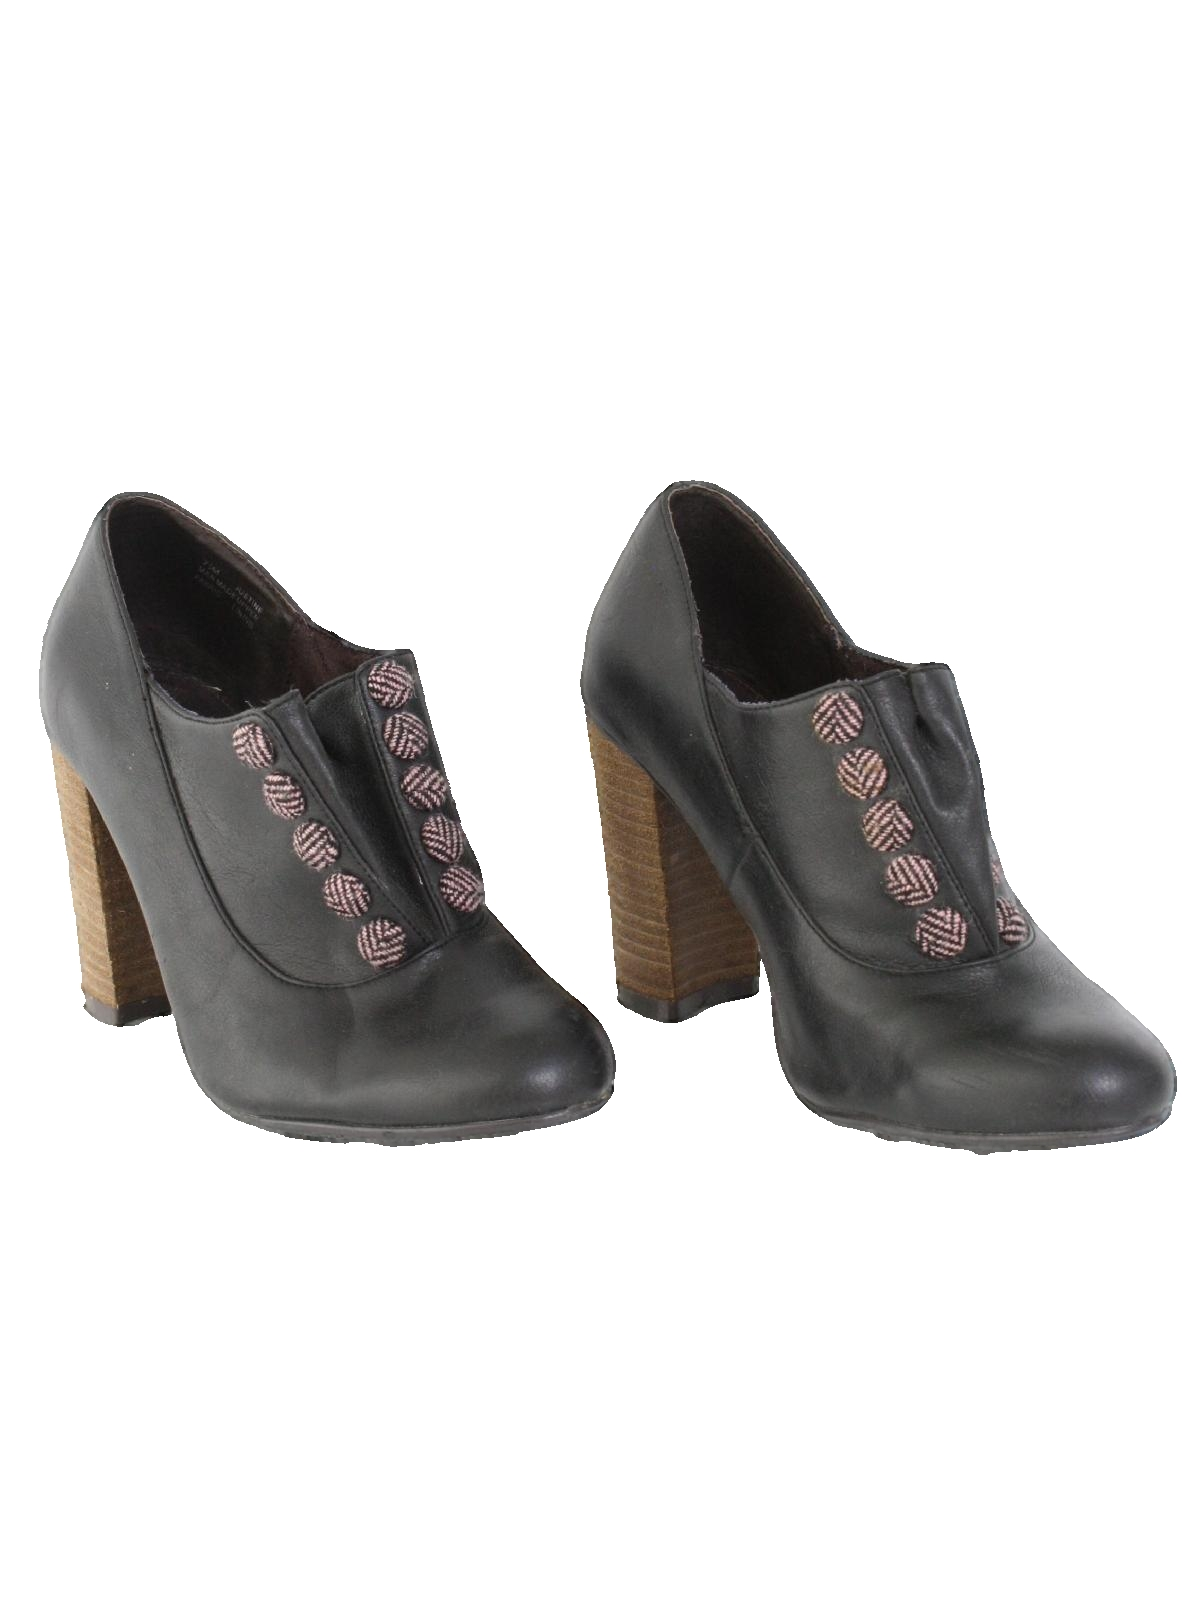 e7bfb82d12a22 1970's Pink Womens Heels Shoes